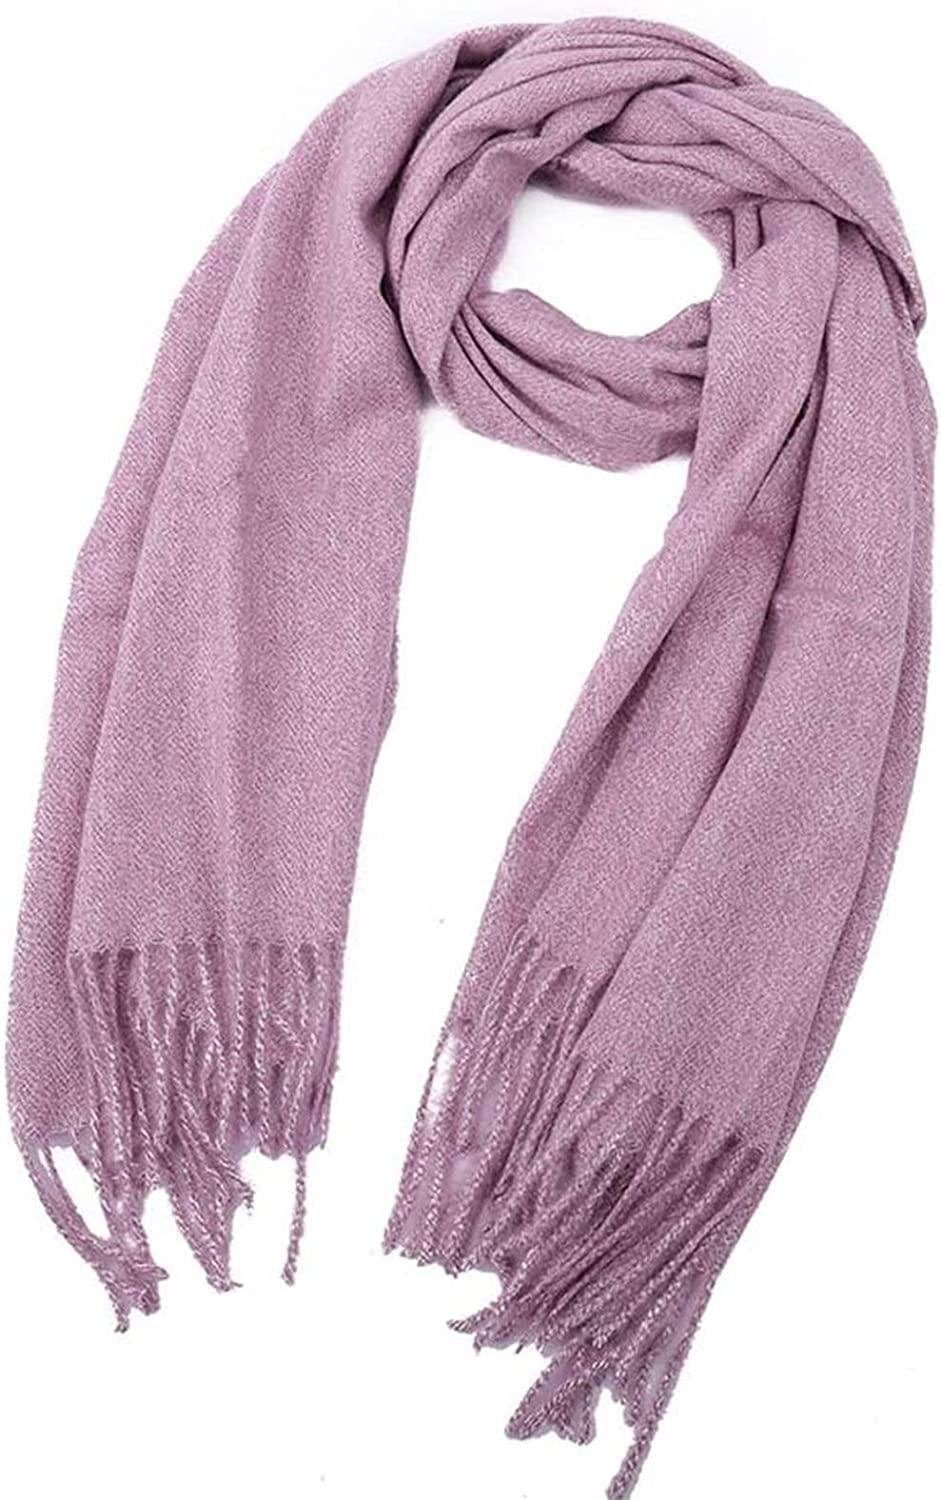 RSBCSHI Women's Winter Long Soft Warm Scarf Wrapped in Cotton Solid Color Fringed Shawl Long Shawl (Color : E)